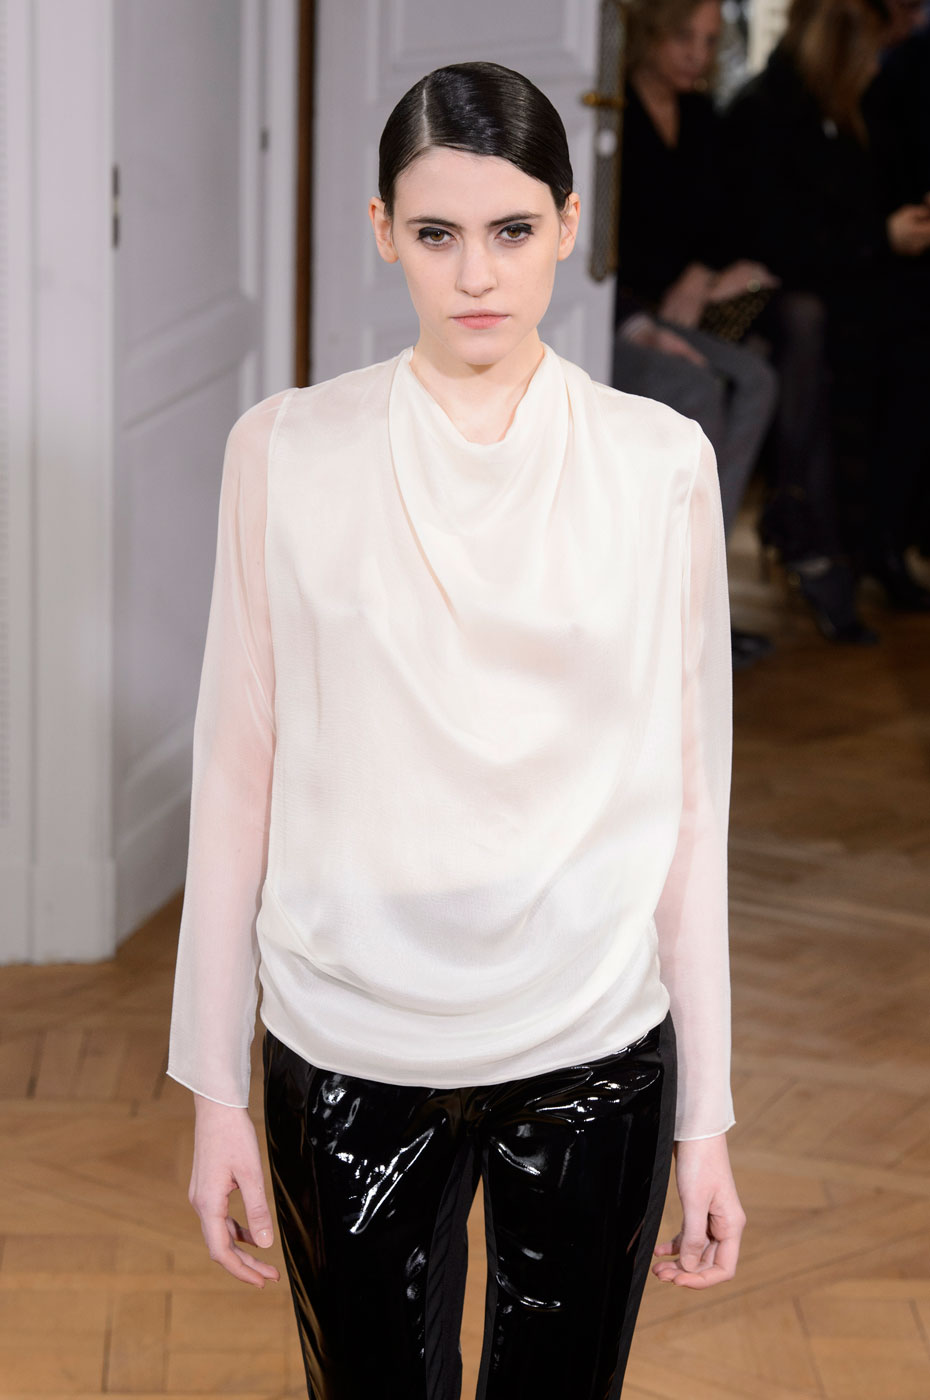 Bouchra-Jarrar-fashion-runway-show-haute-couture-paris-spring-summer-2015-the-impression-48